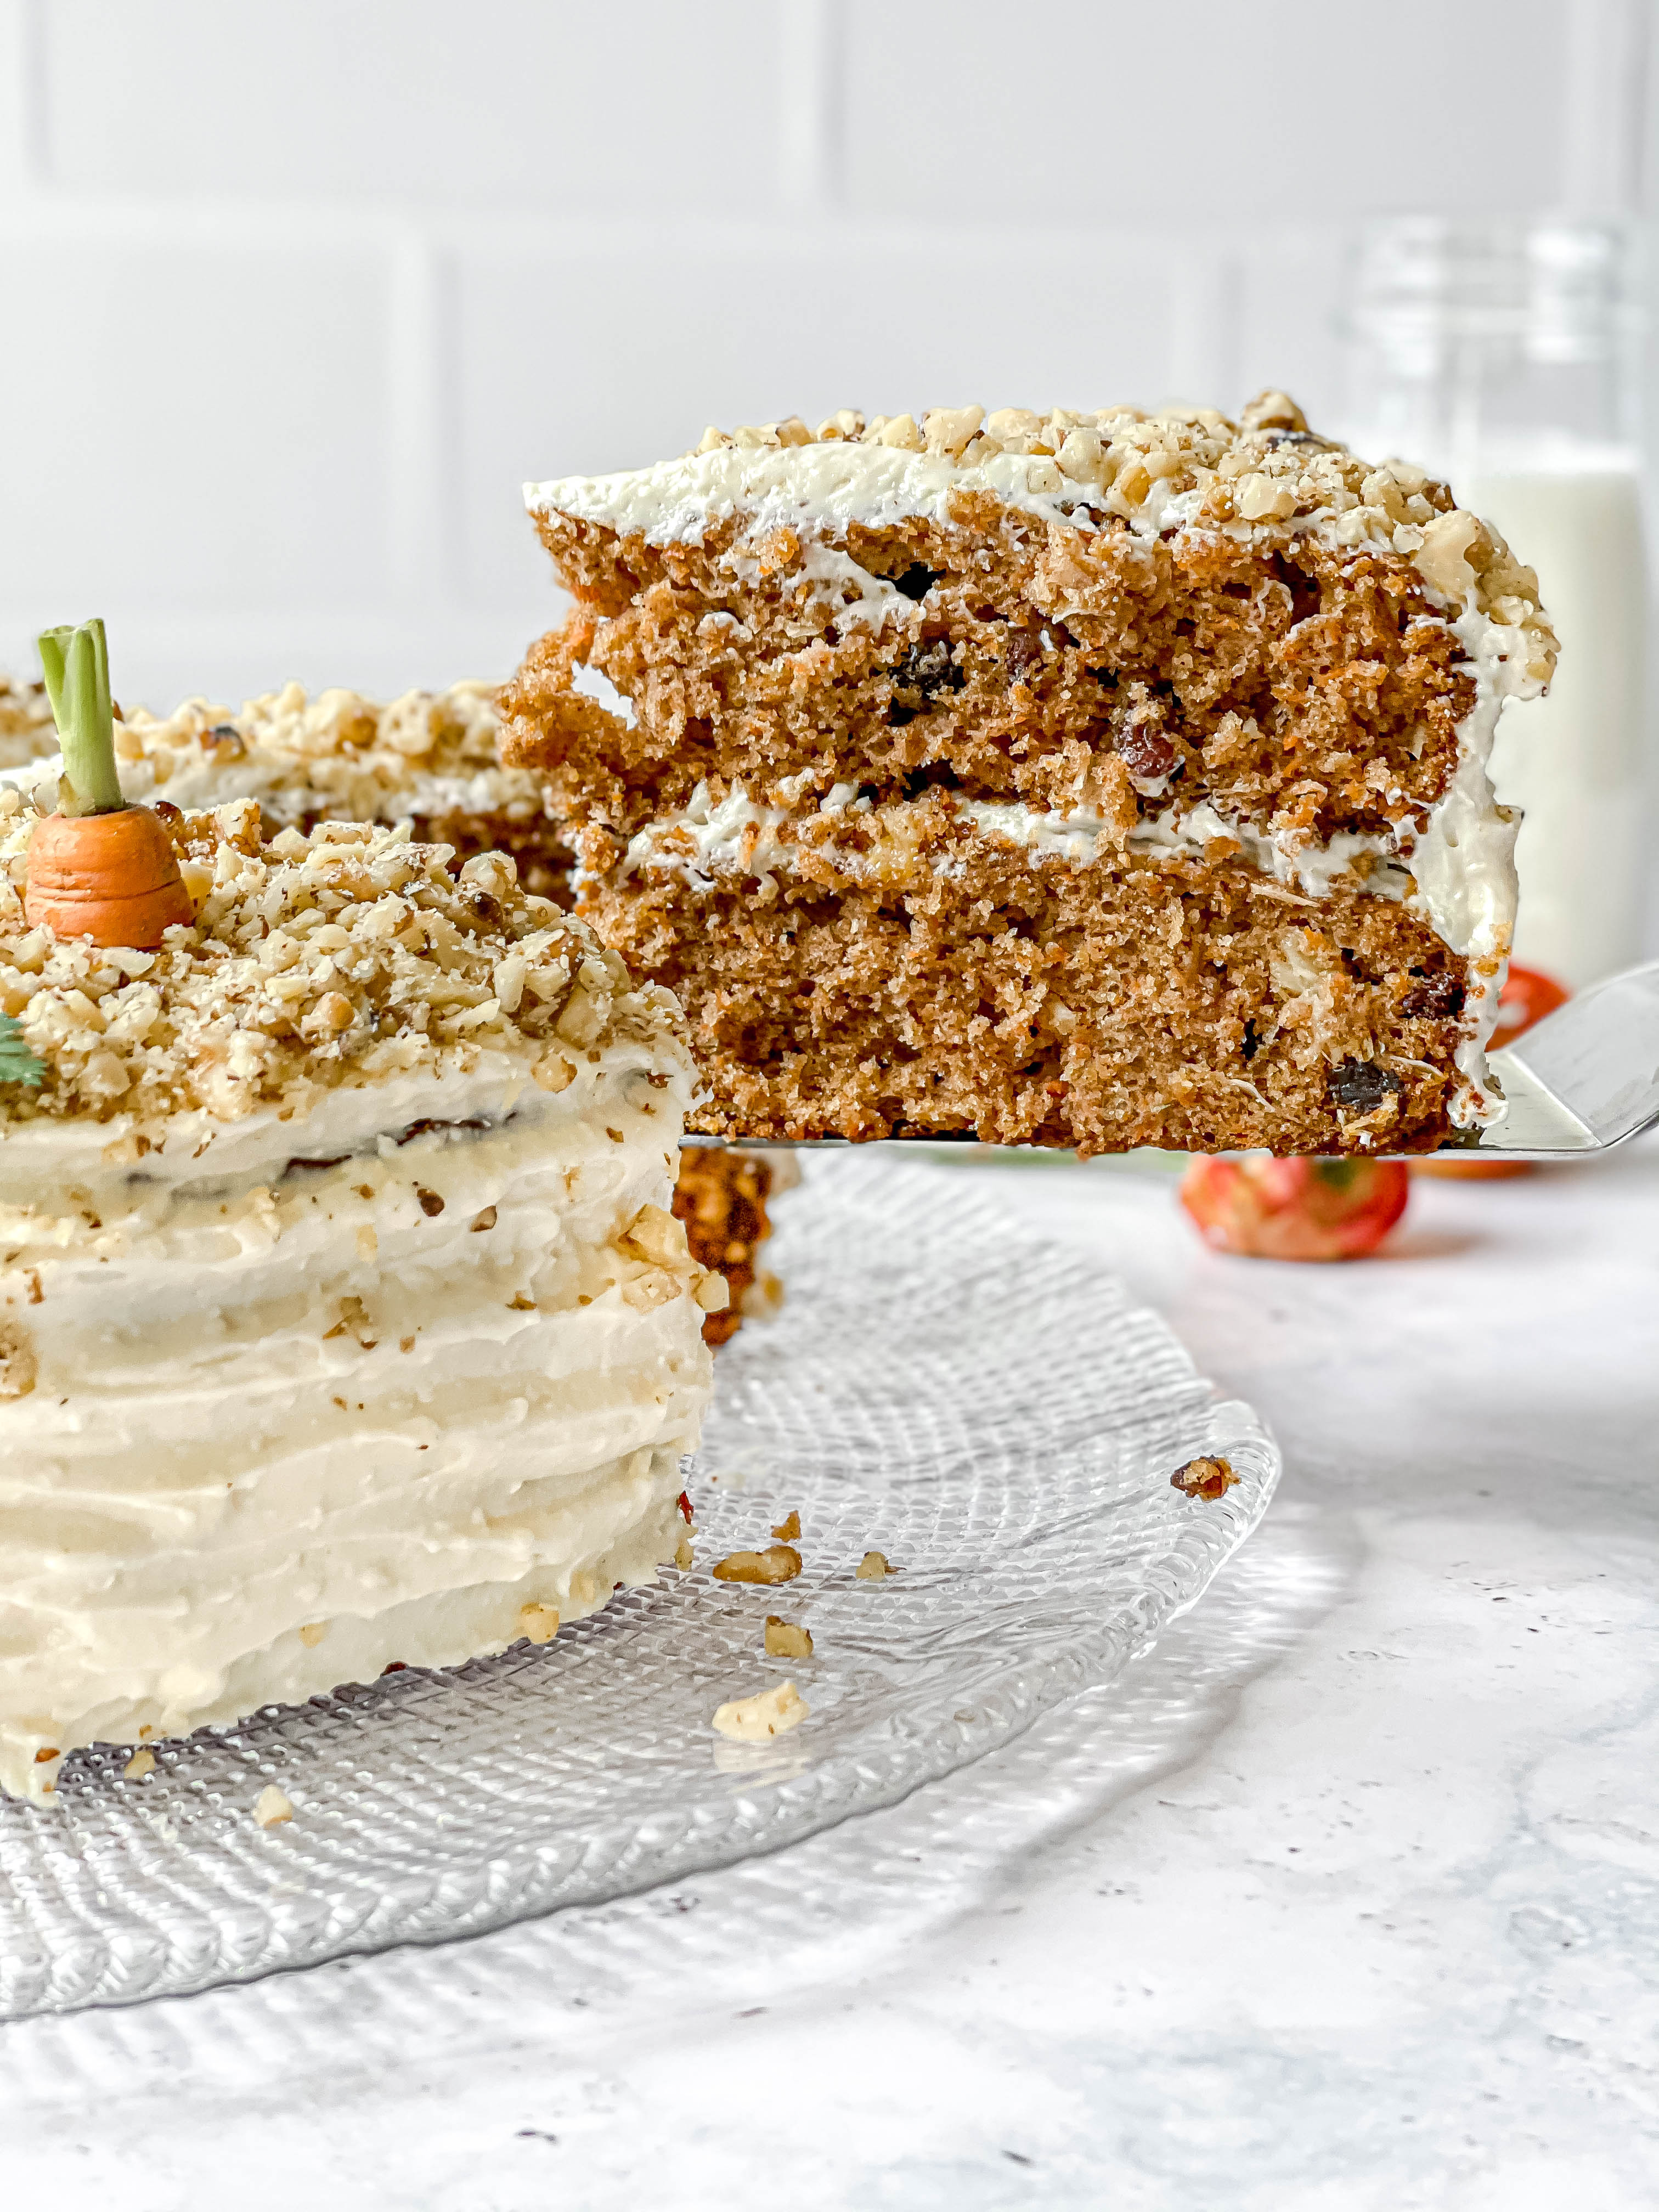 My Very Best Carrot Cake with Cream Cheese Frosting